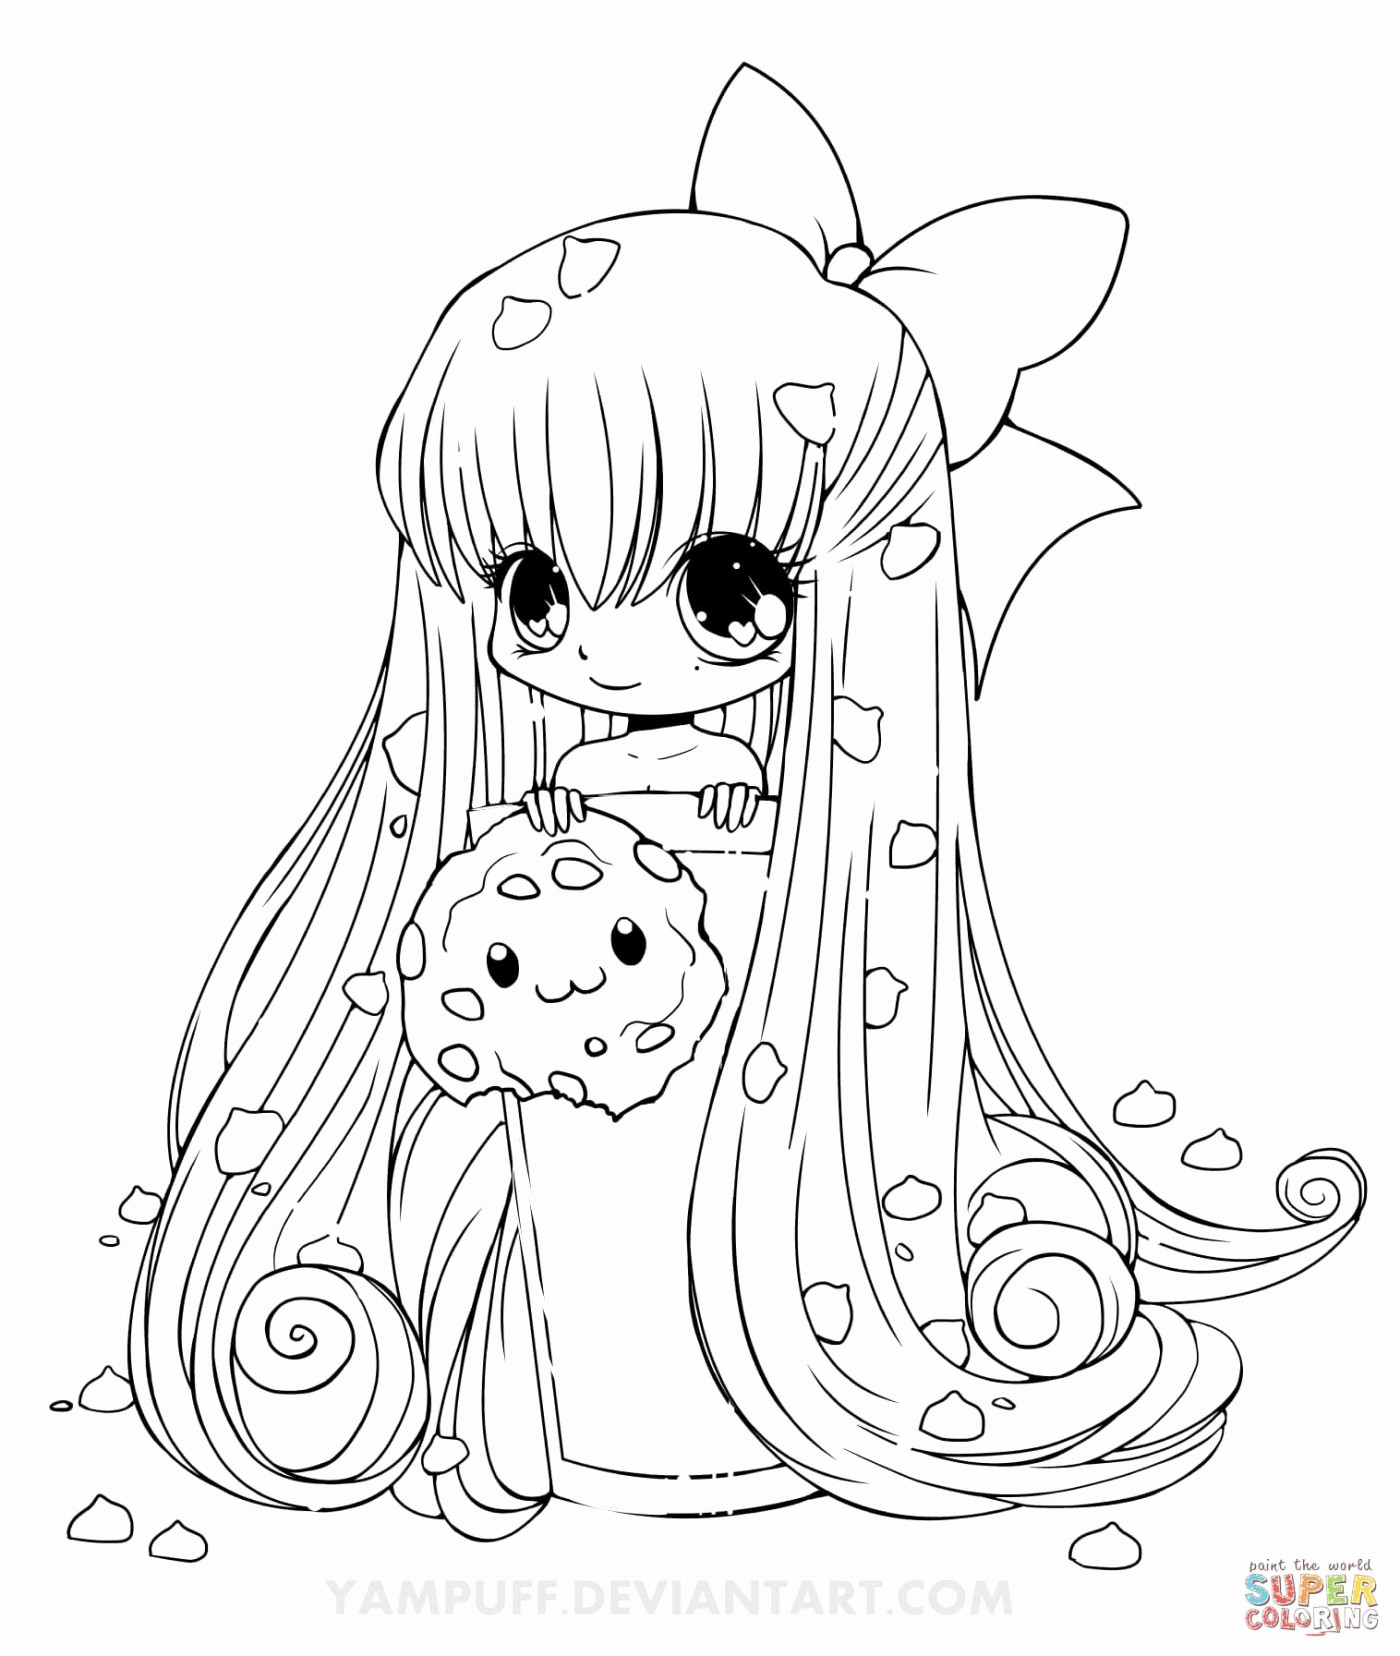 anime kawaii girl coloring pages anime manga coloring pages at getcoloringscom free coloring pages anime girl kawaii